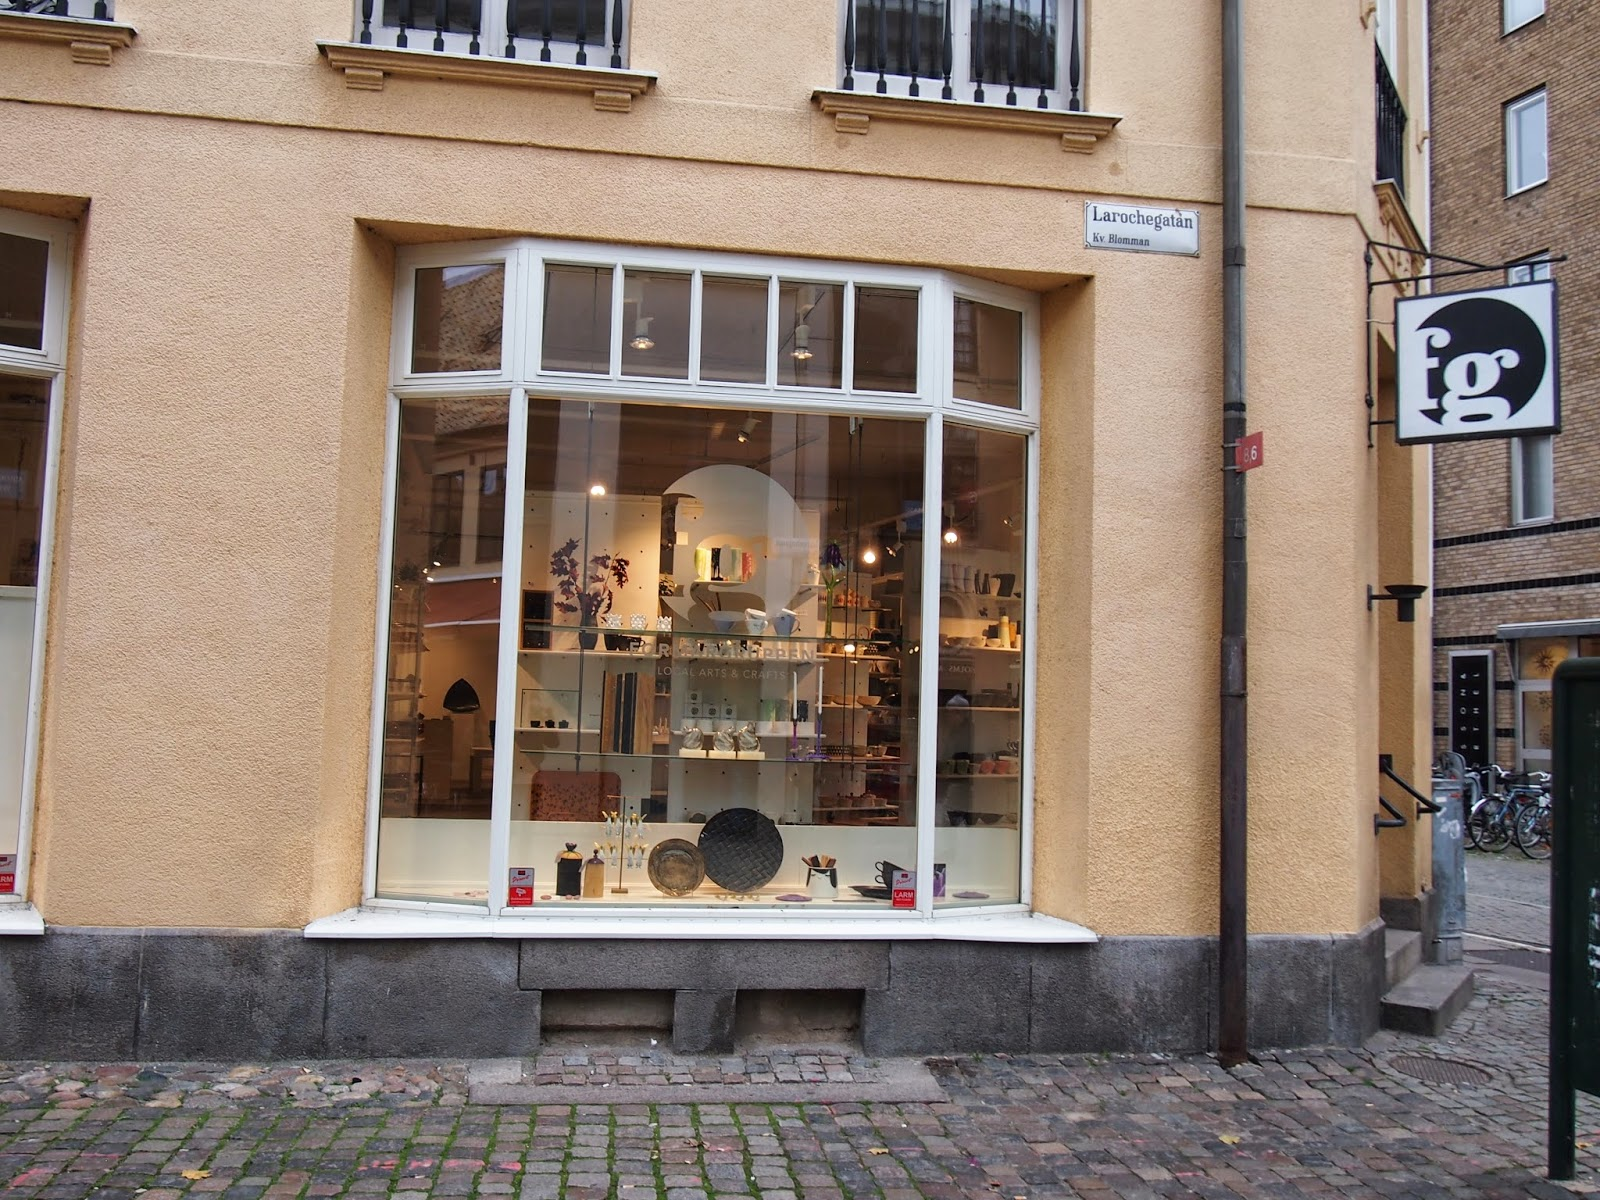 Formargruppen, a local arts and crafts store, in Malmo, Sweden